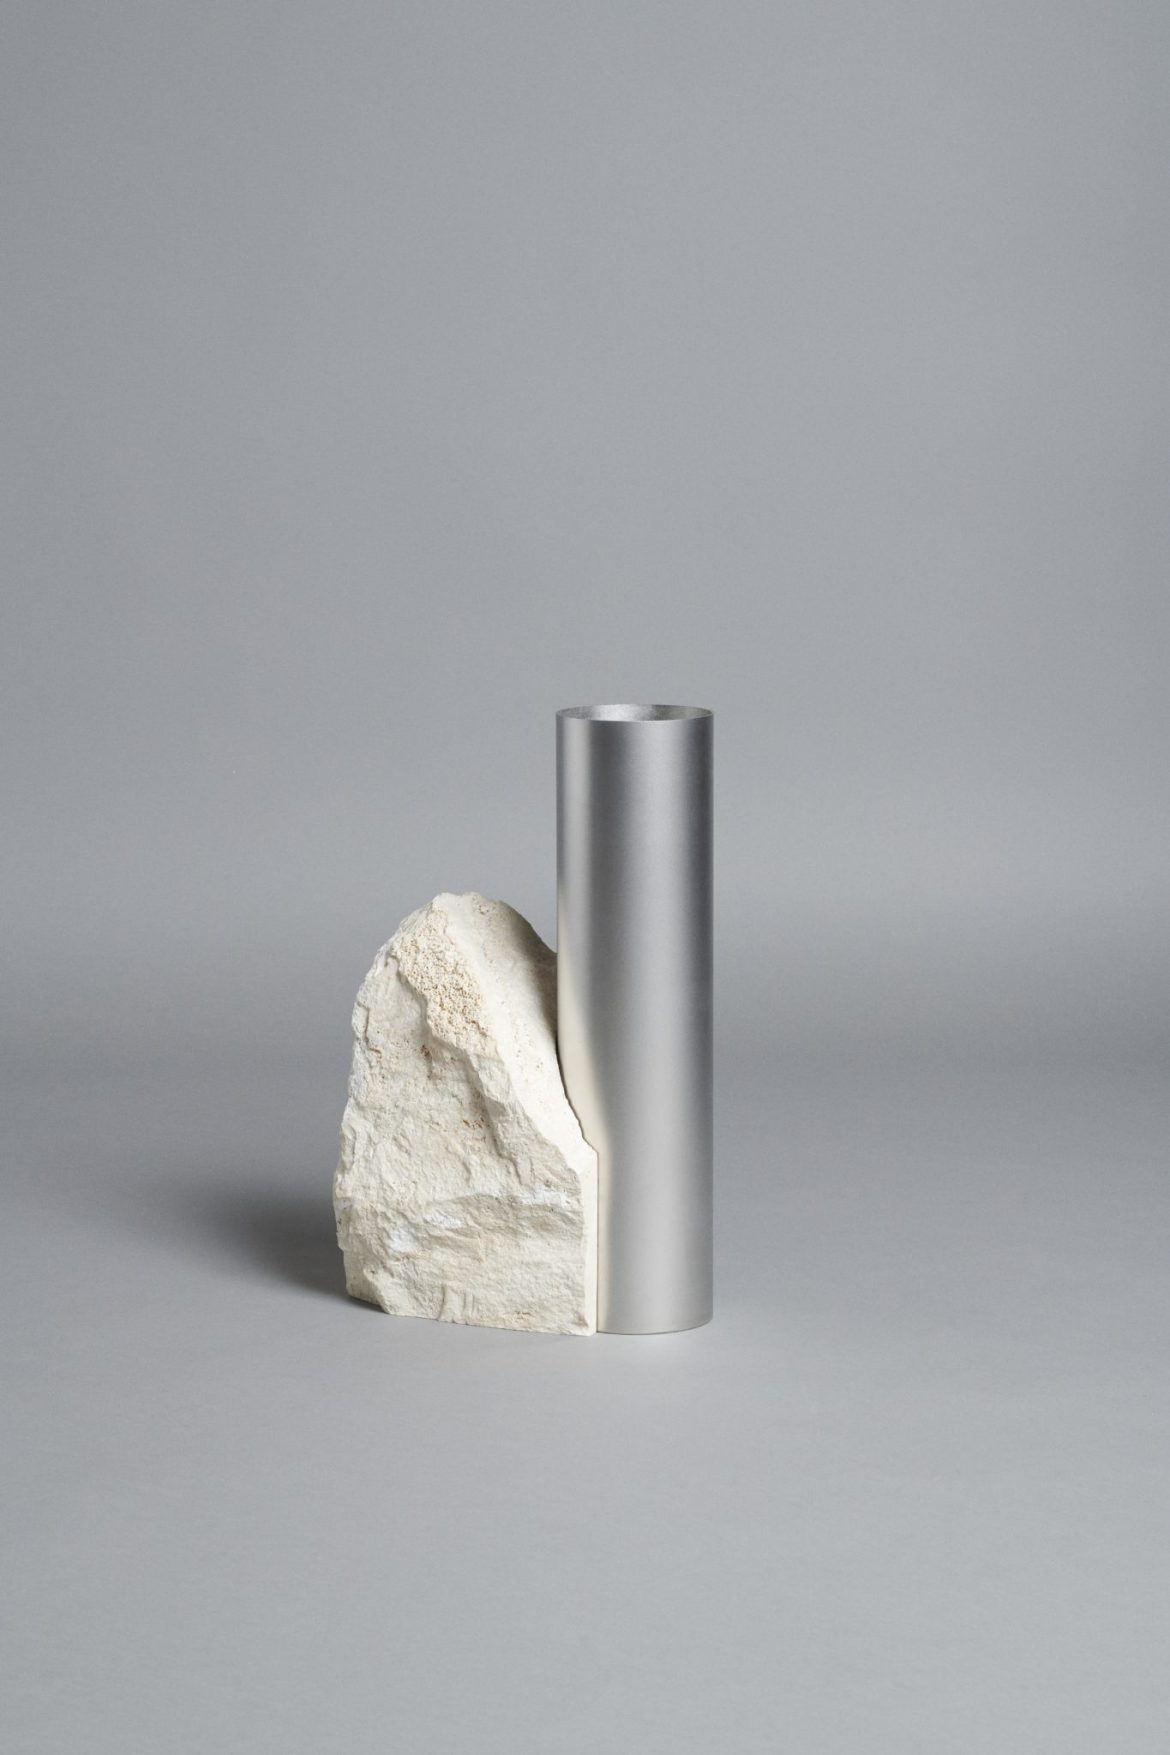 Bloc Studios x Tableau, Minimal white travertine and metal vase